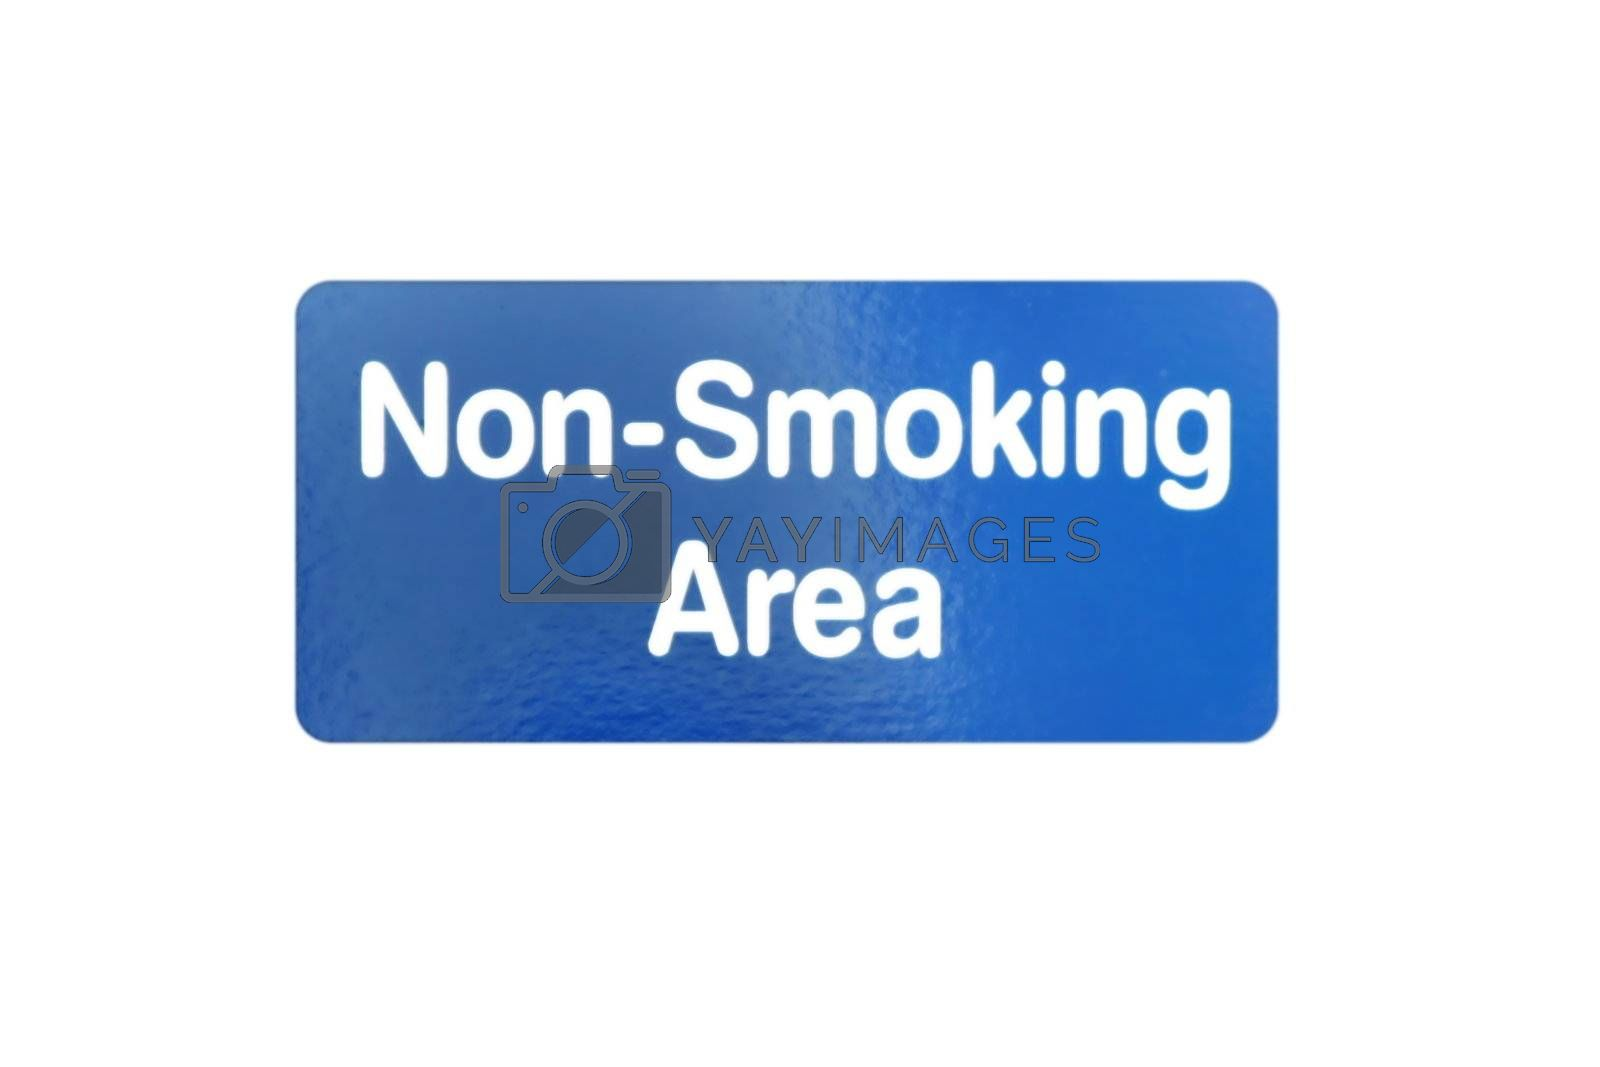 Non Smoking Area by hlehnerer